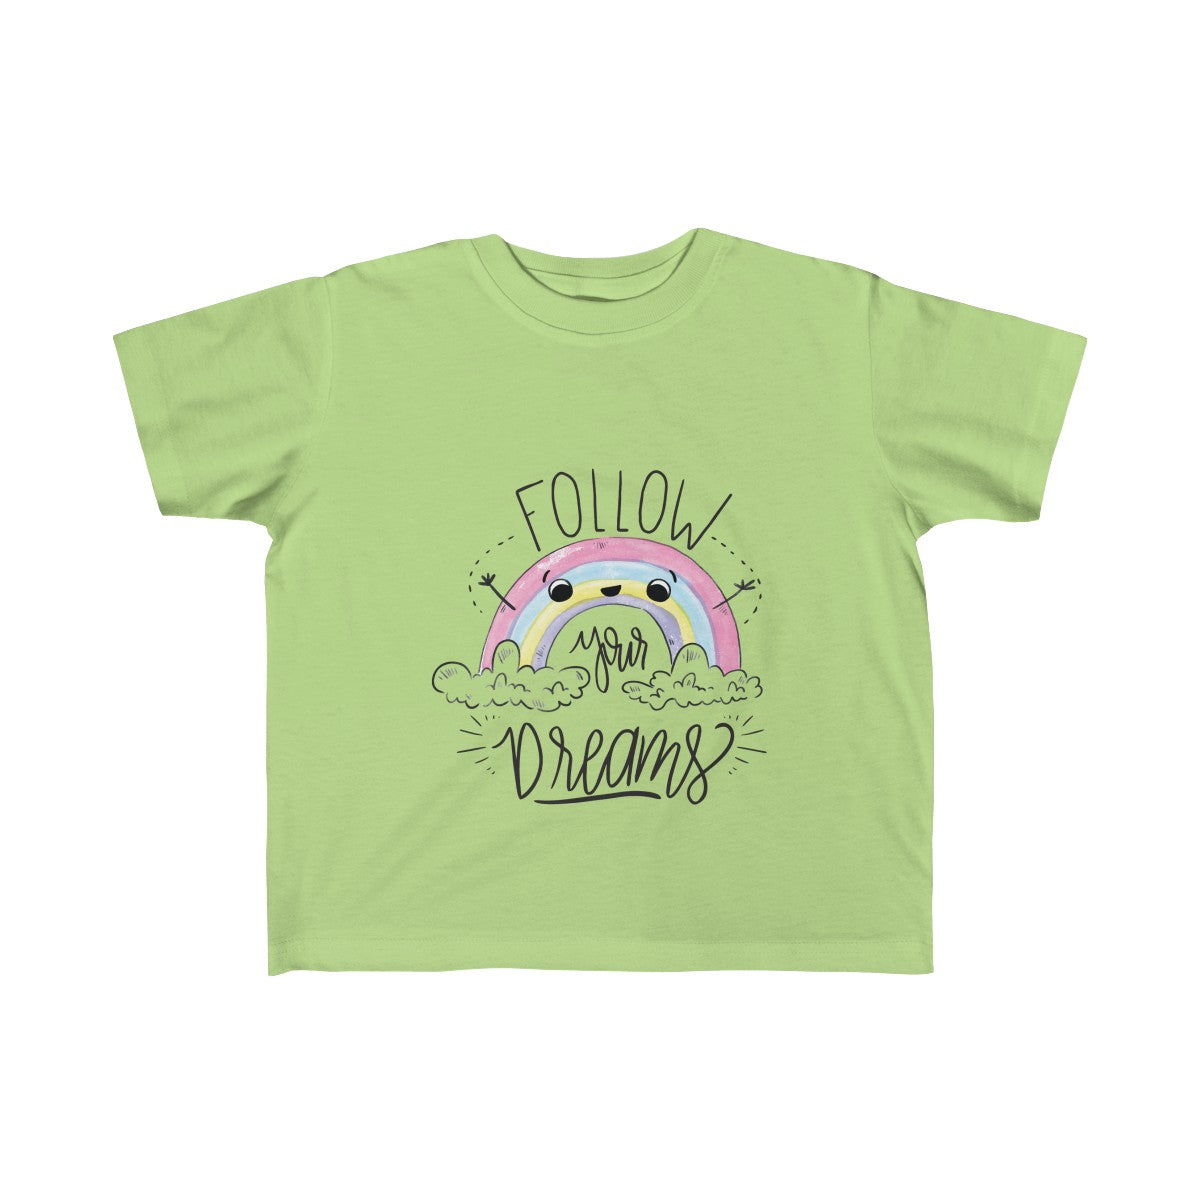 Rainbow Colorful Custom Matching Sister Kids T-Shirt - mysterynb